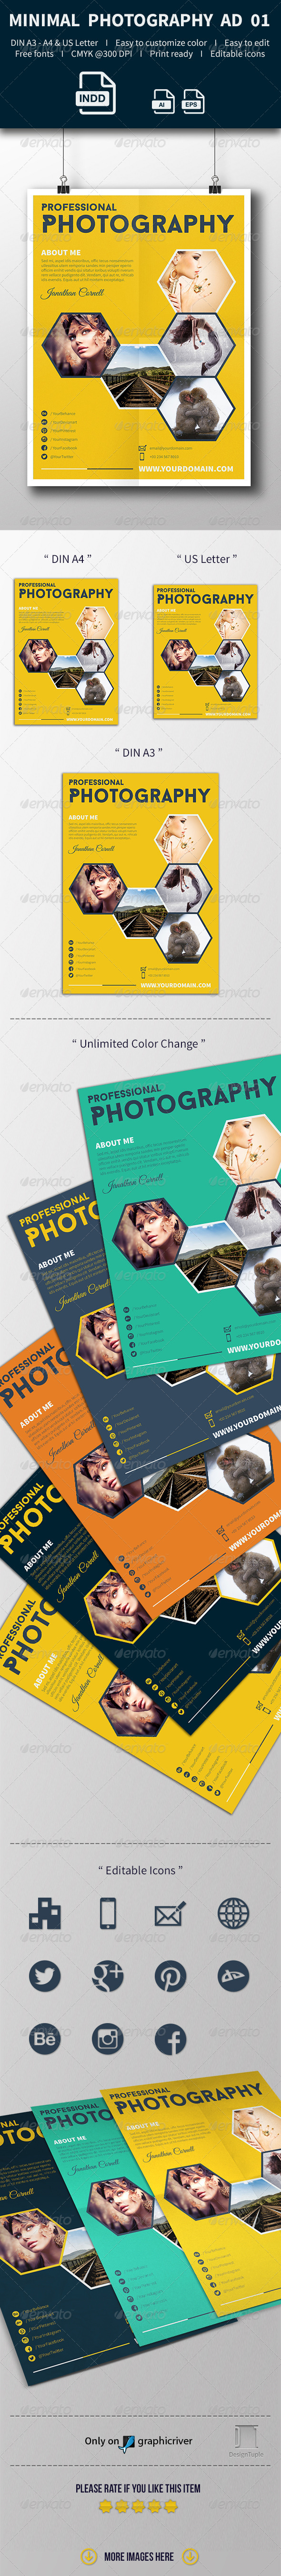 GraphicRiver Get Minimal Photography Ad Template 01 8010852